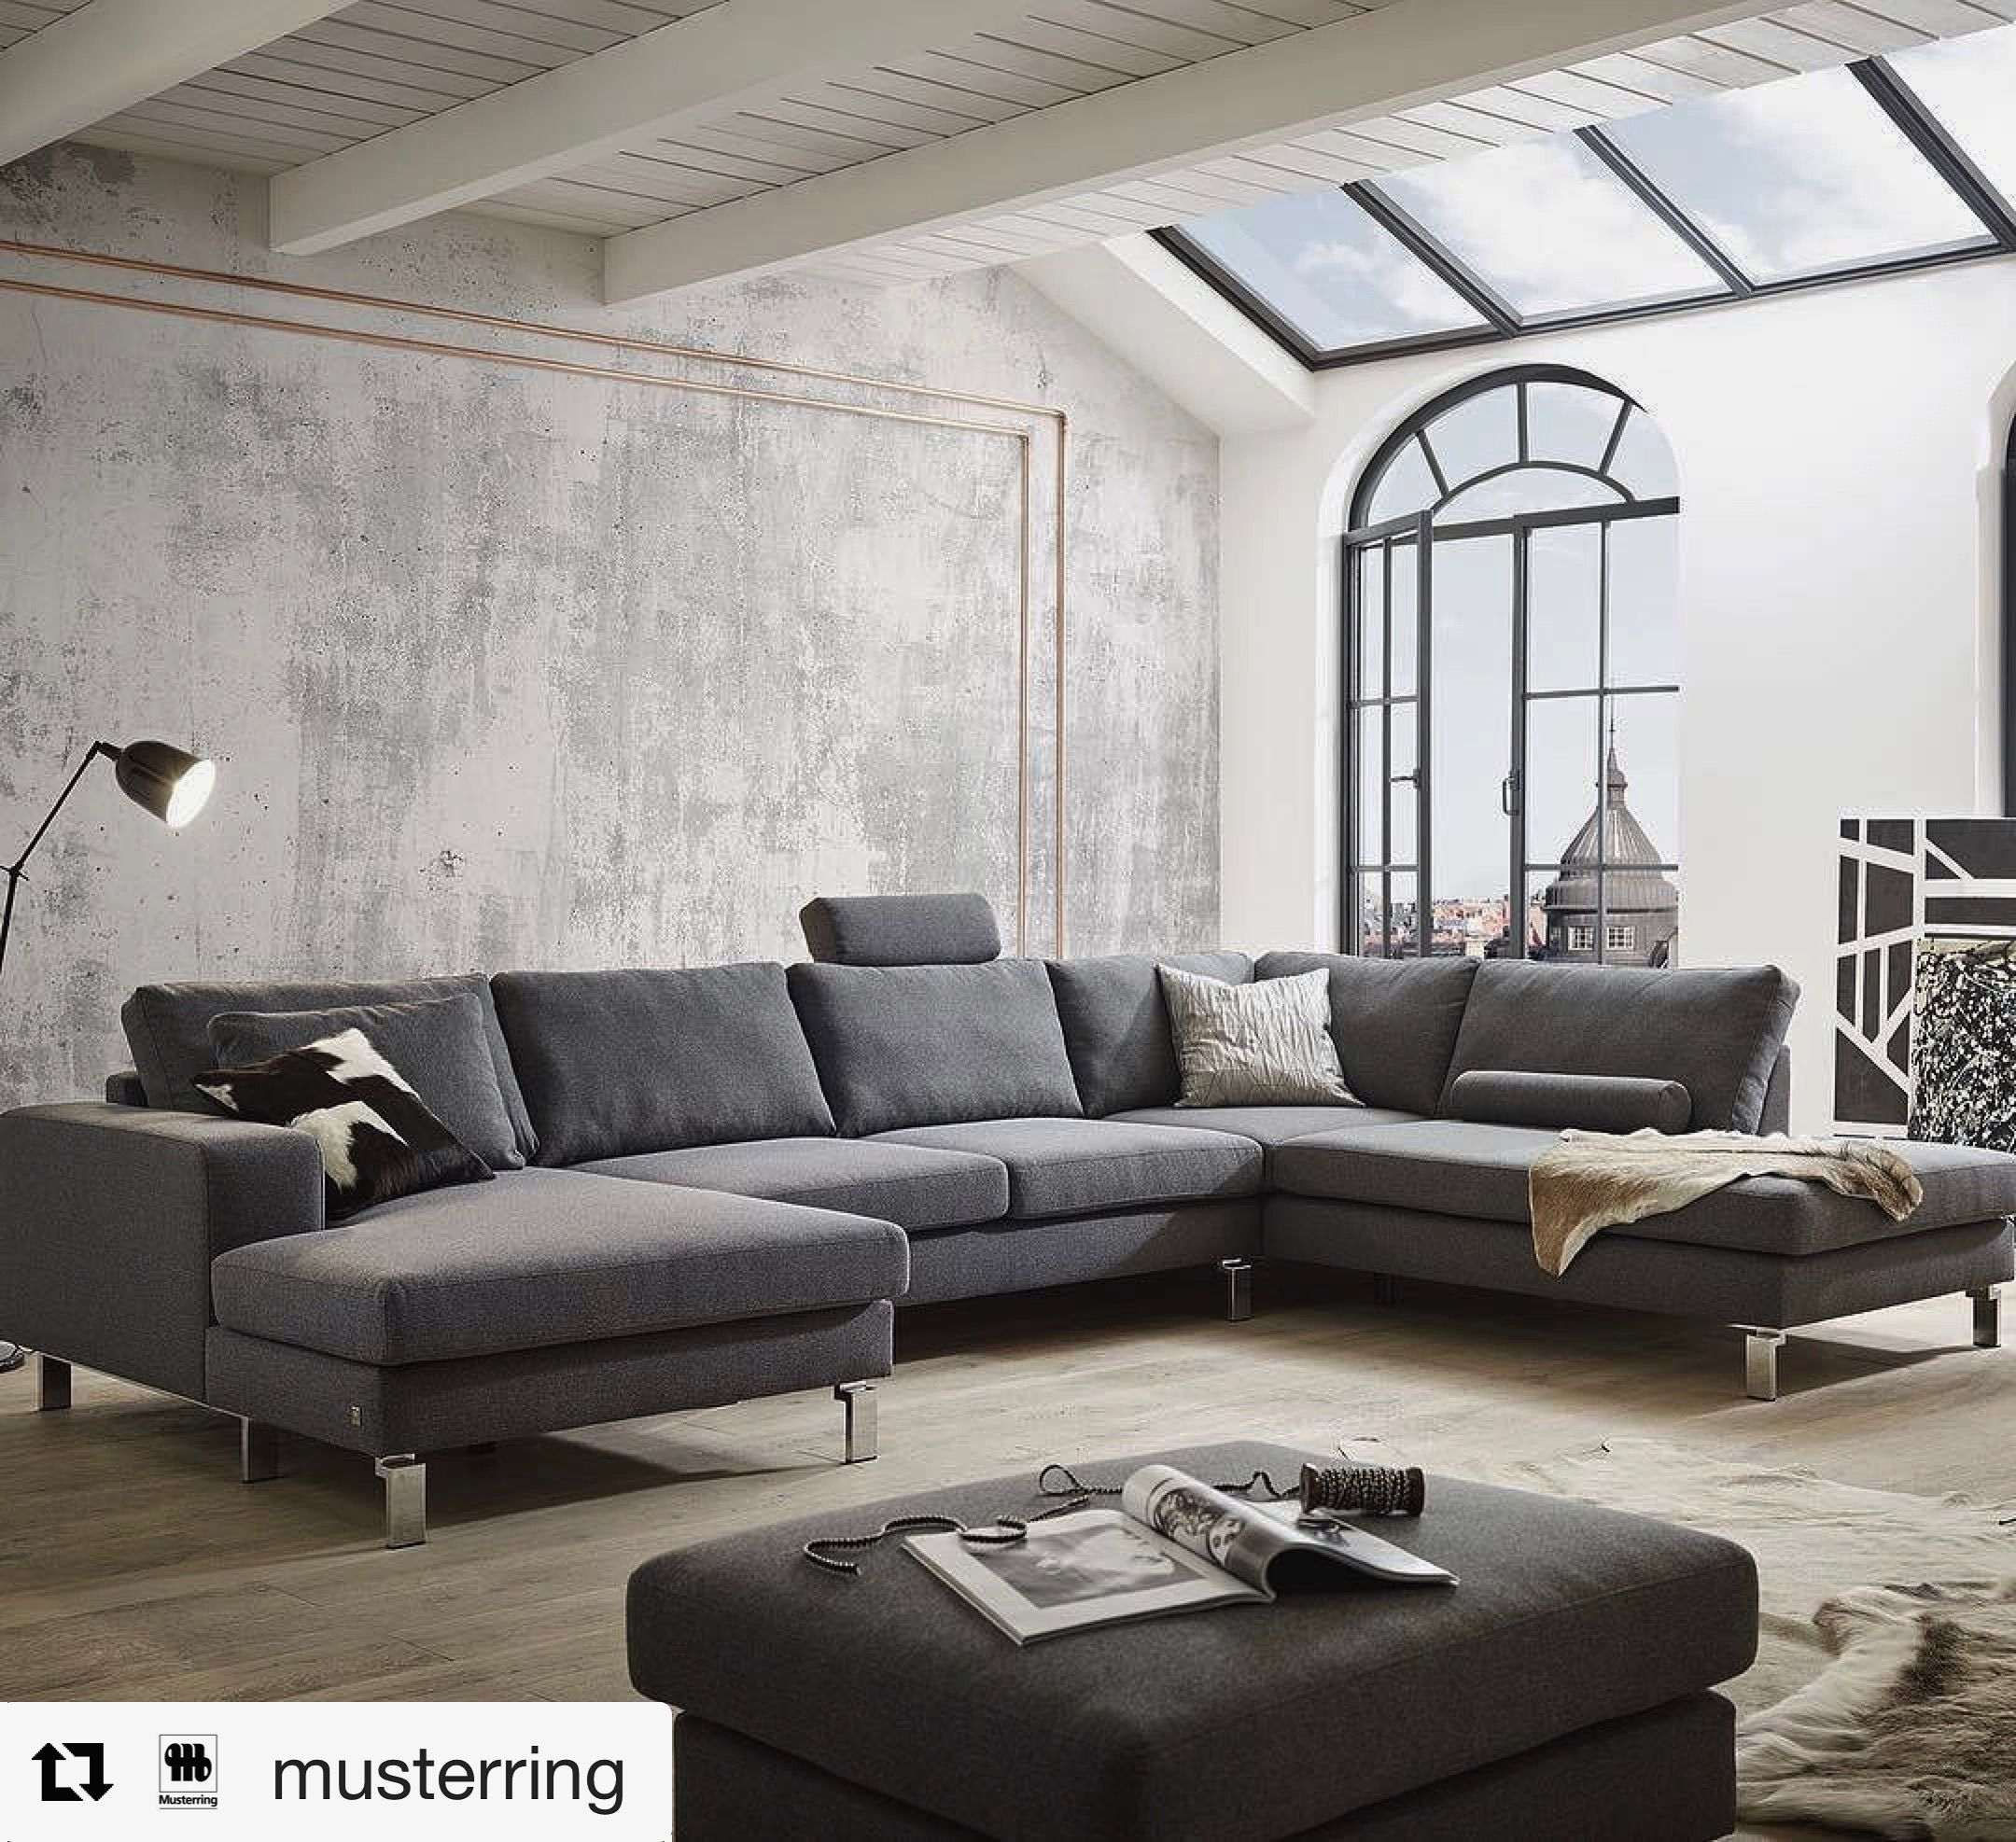 musterring mr4500 couch pinterest. Black Bedroom Furniture Sets. Home Design Ideas